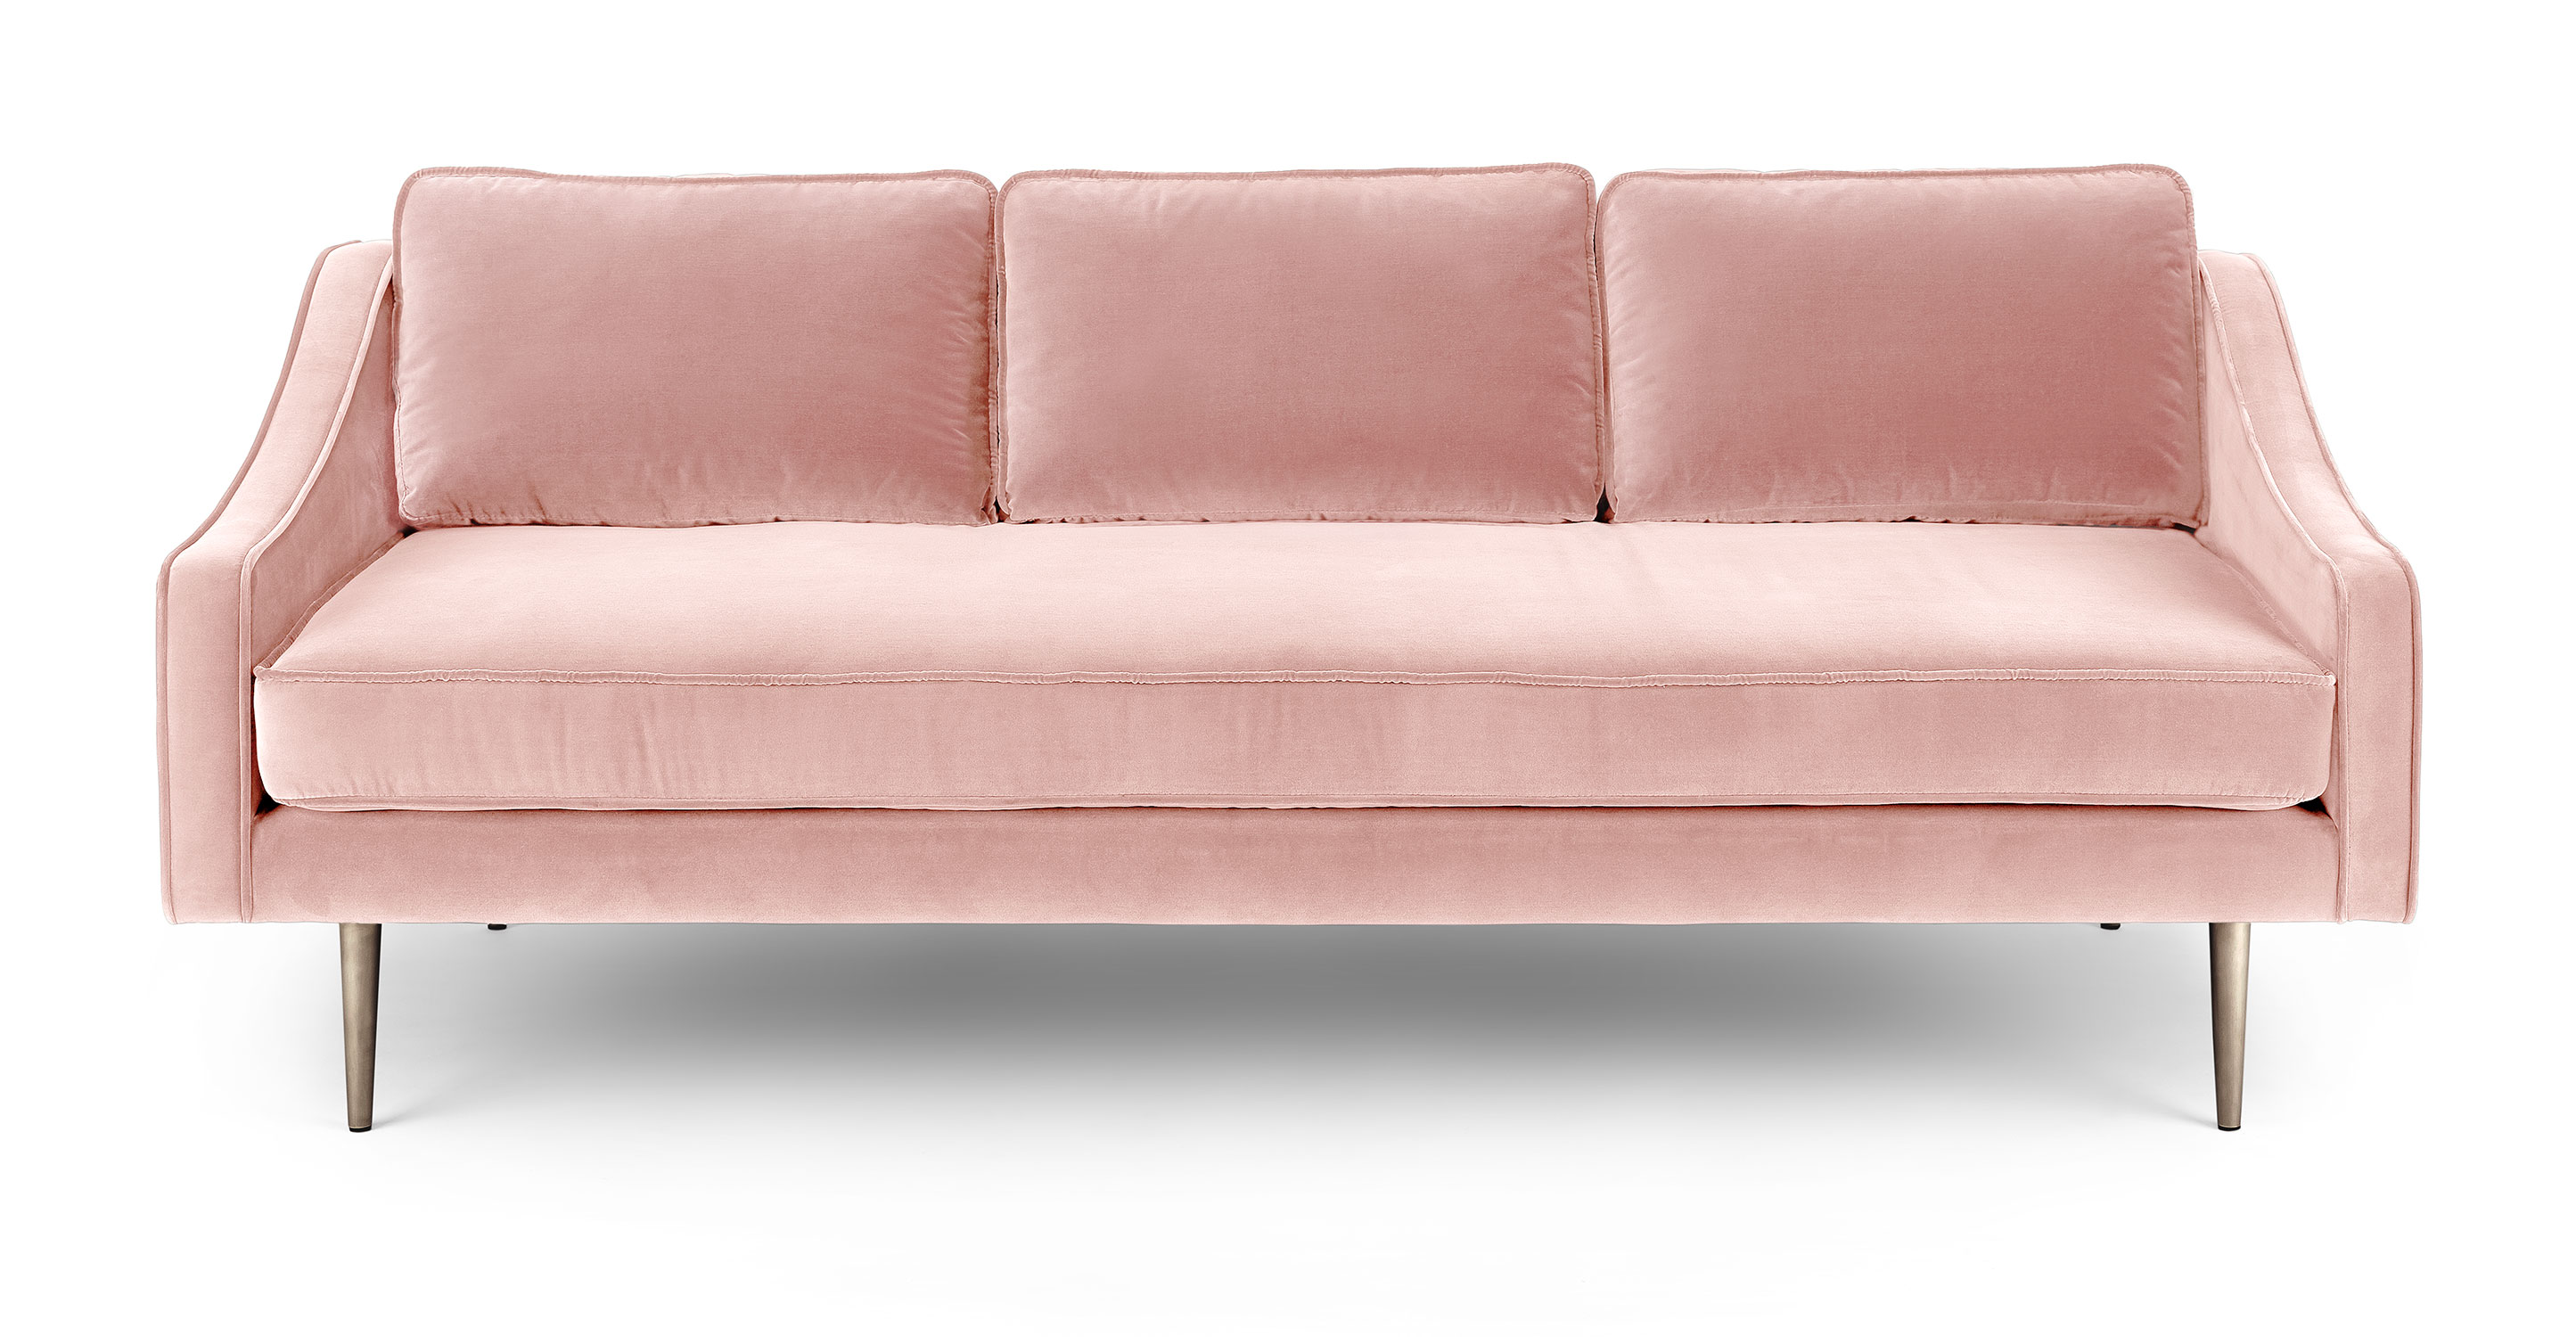 pink sofa furniture discontinued dfs promotion code brokeasshome